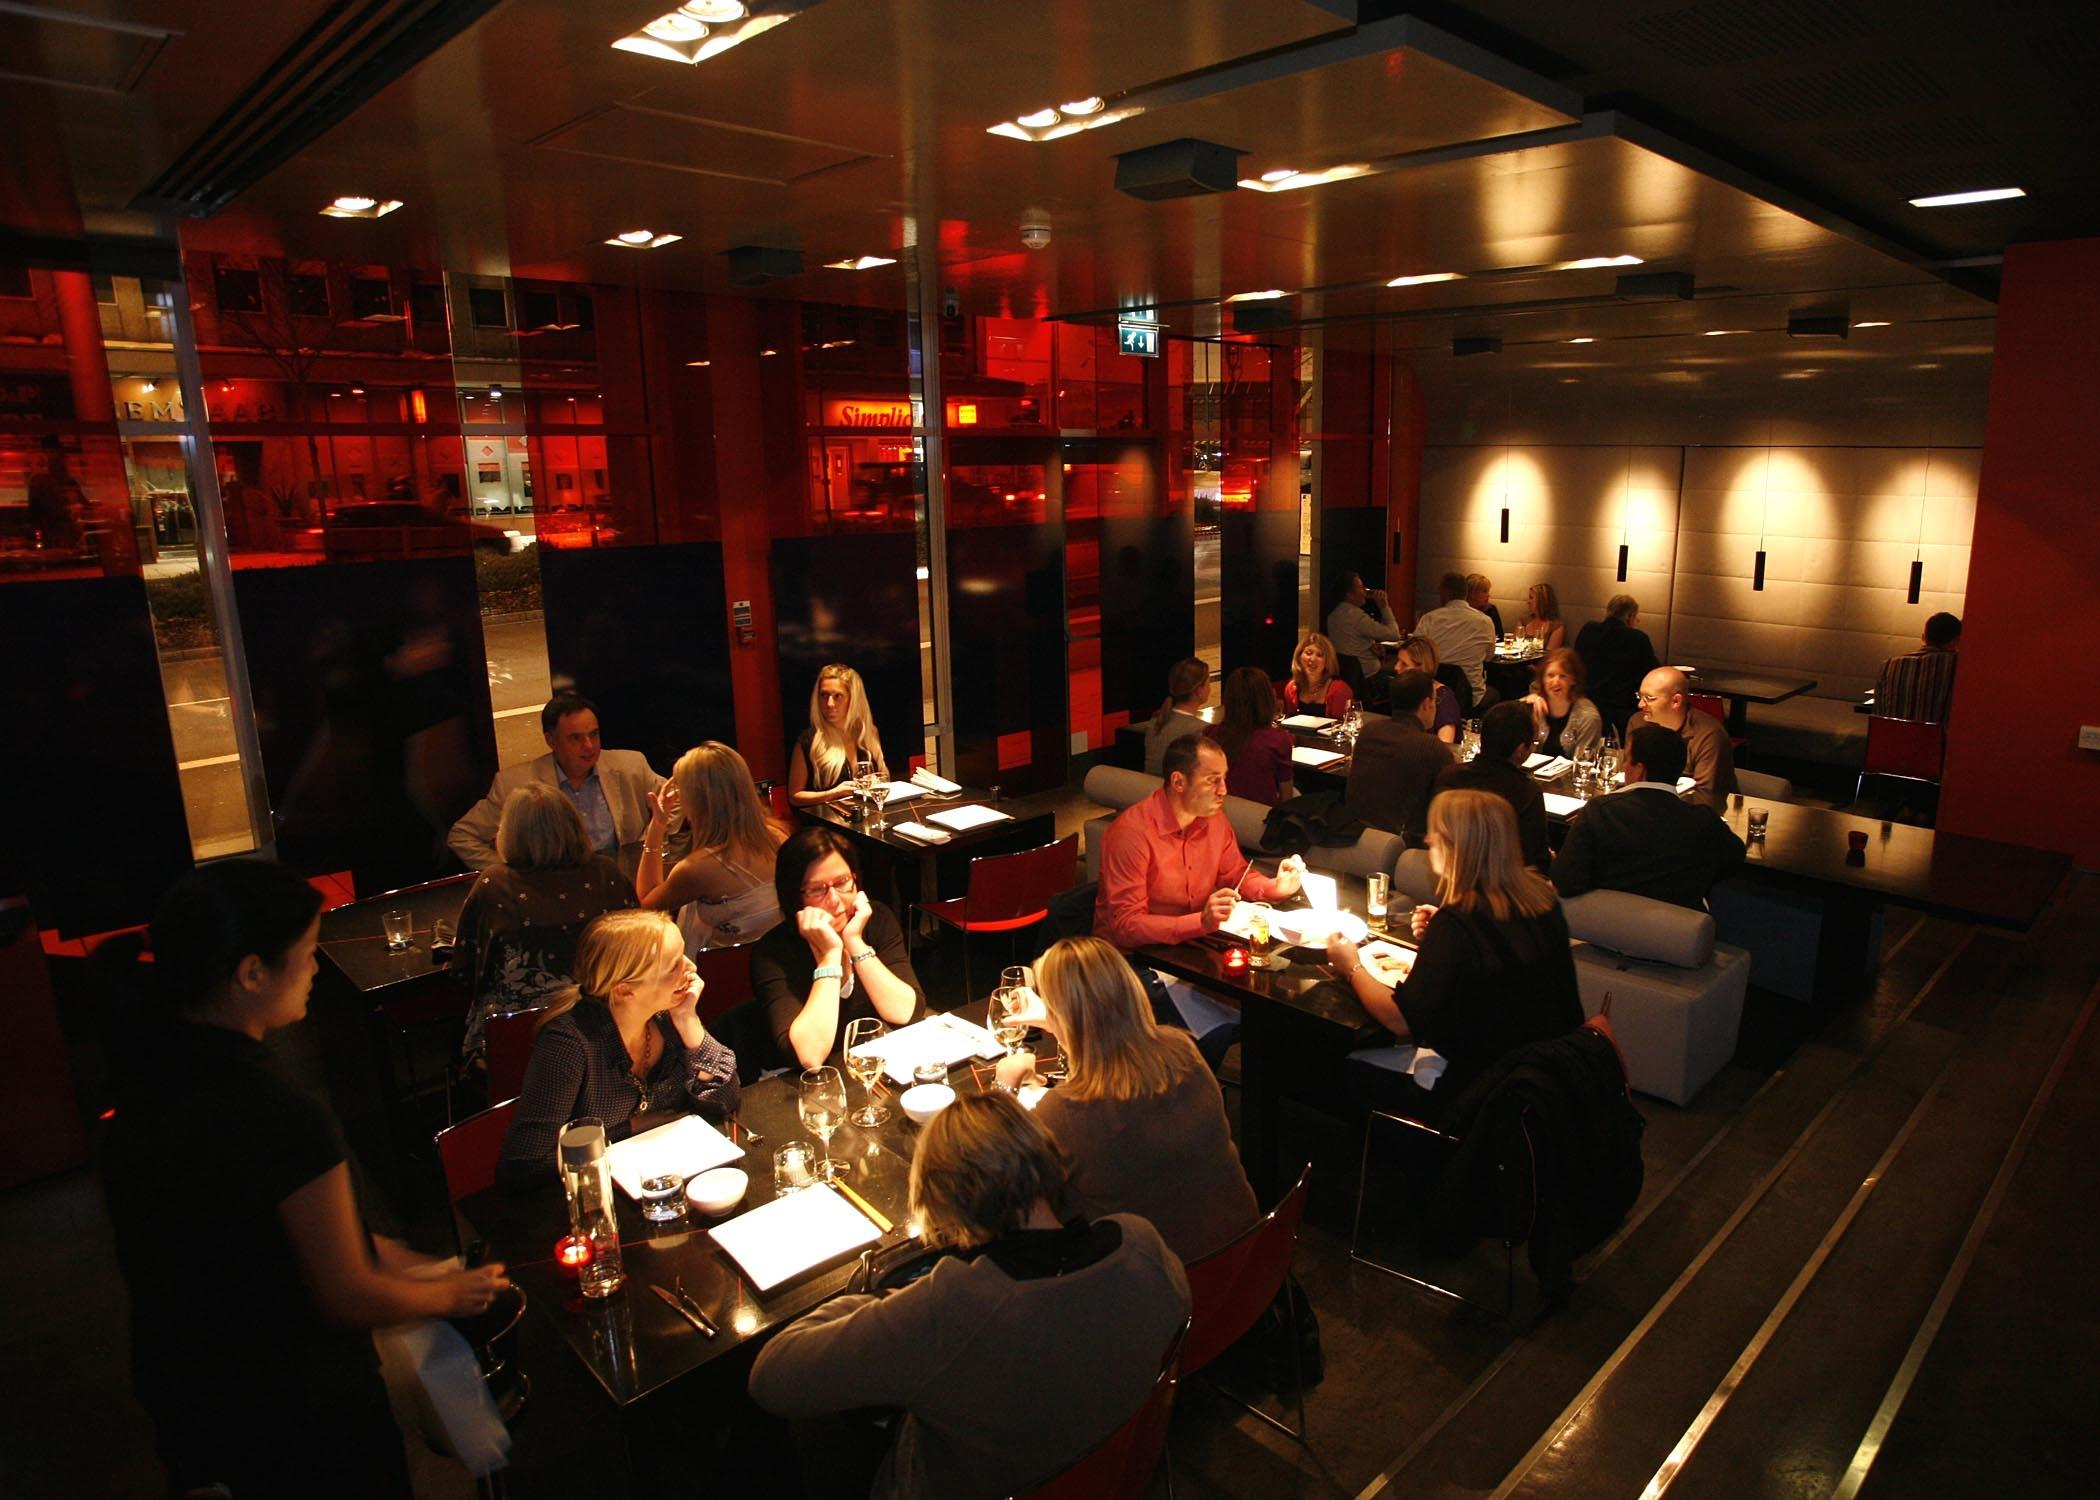 chicago speed dating events free Interested in attending event: speed dating saturday event | mycheekydate singles chicago in chicago discover, build and share your experiences today.